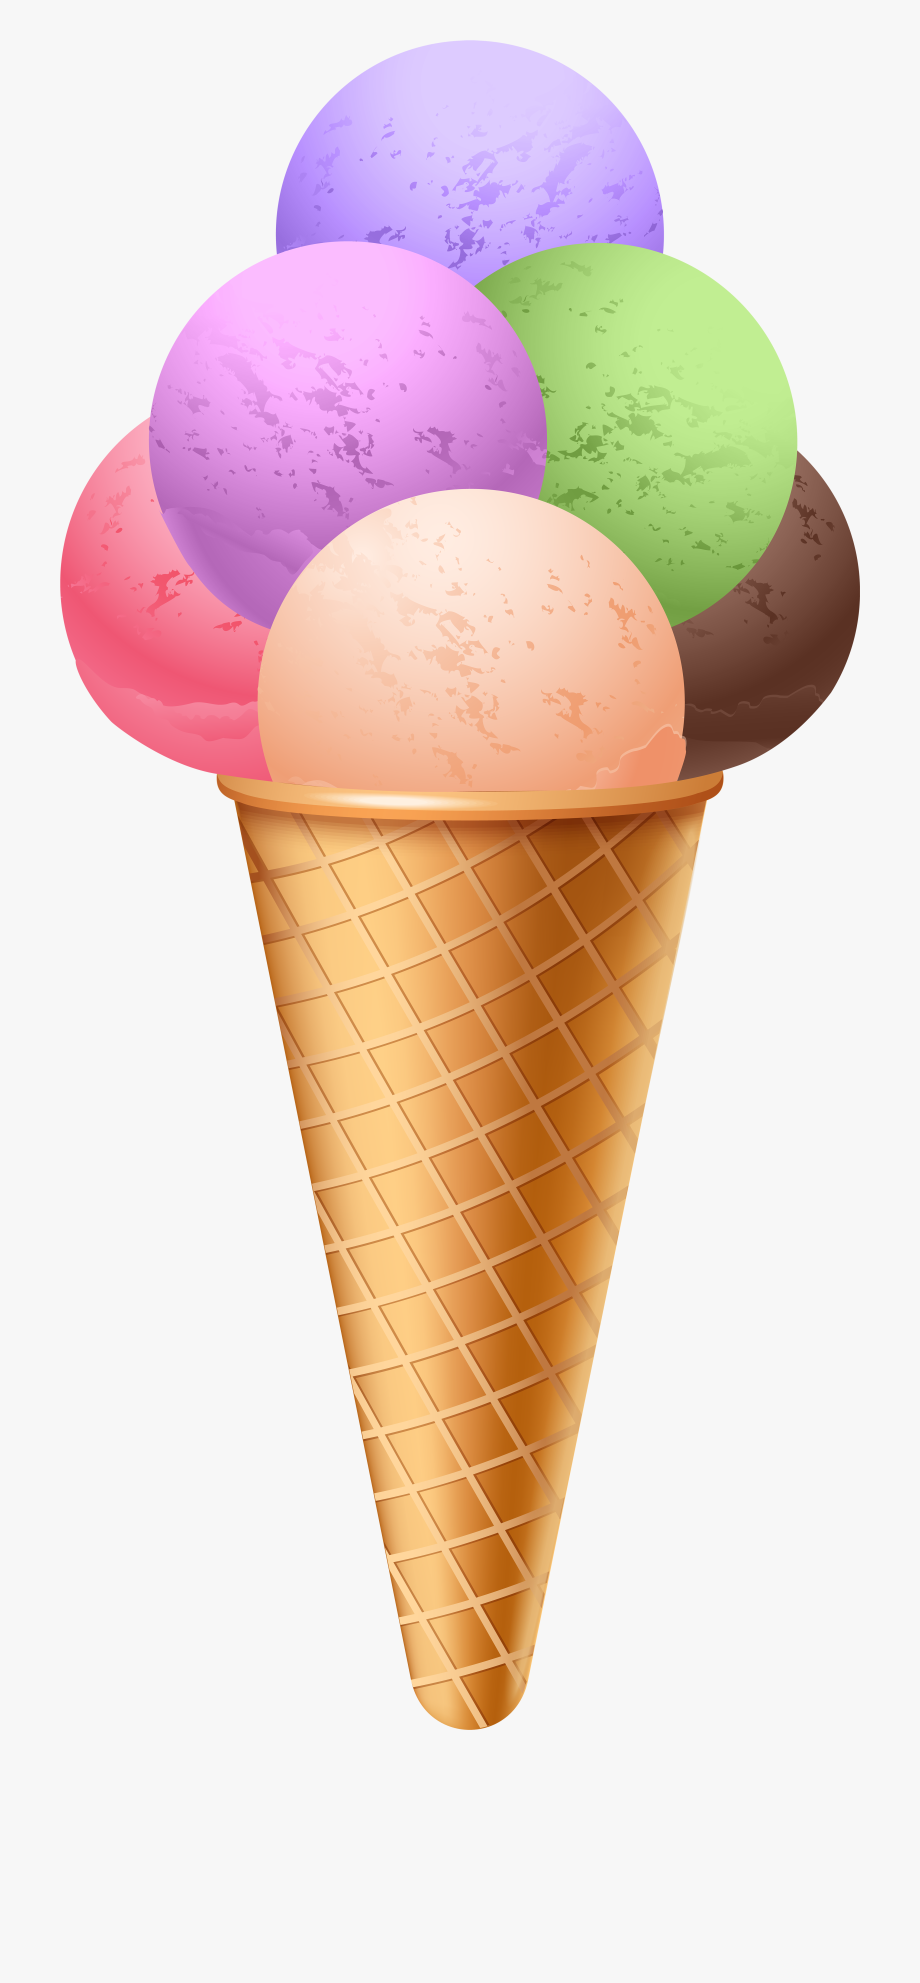 Free clipart on a transparent ice cream cone picture stock Ice Cream Cone - Ice Cream Clipart Png #638909 - Free Cliparts on ... picture stock